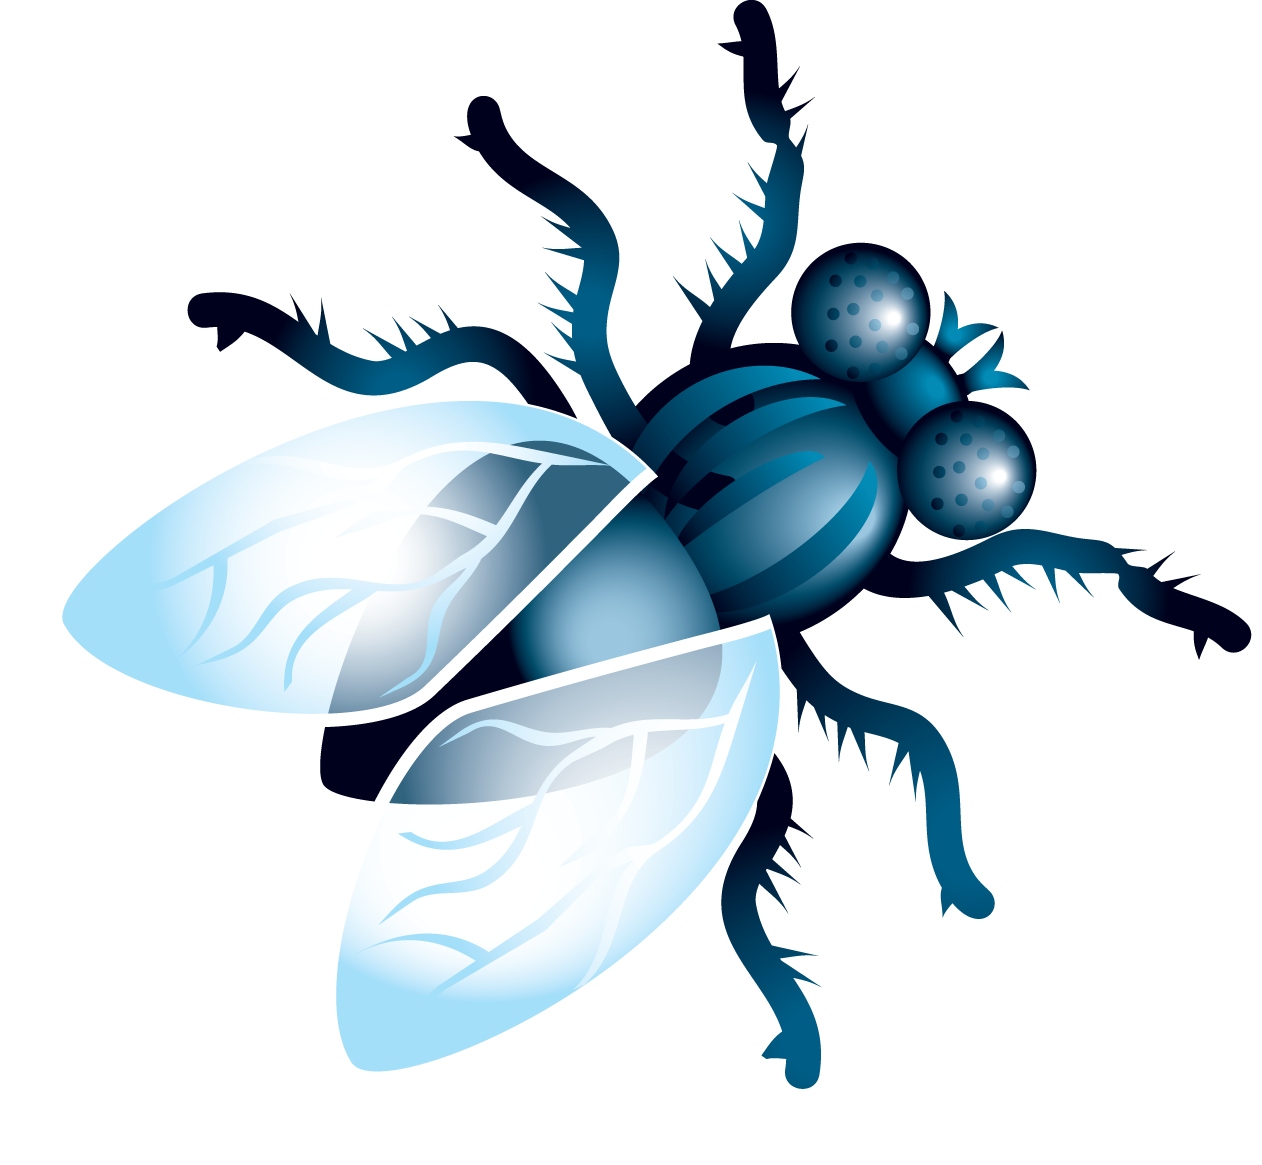 uploads fly fly PNG3957 24